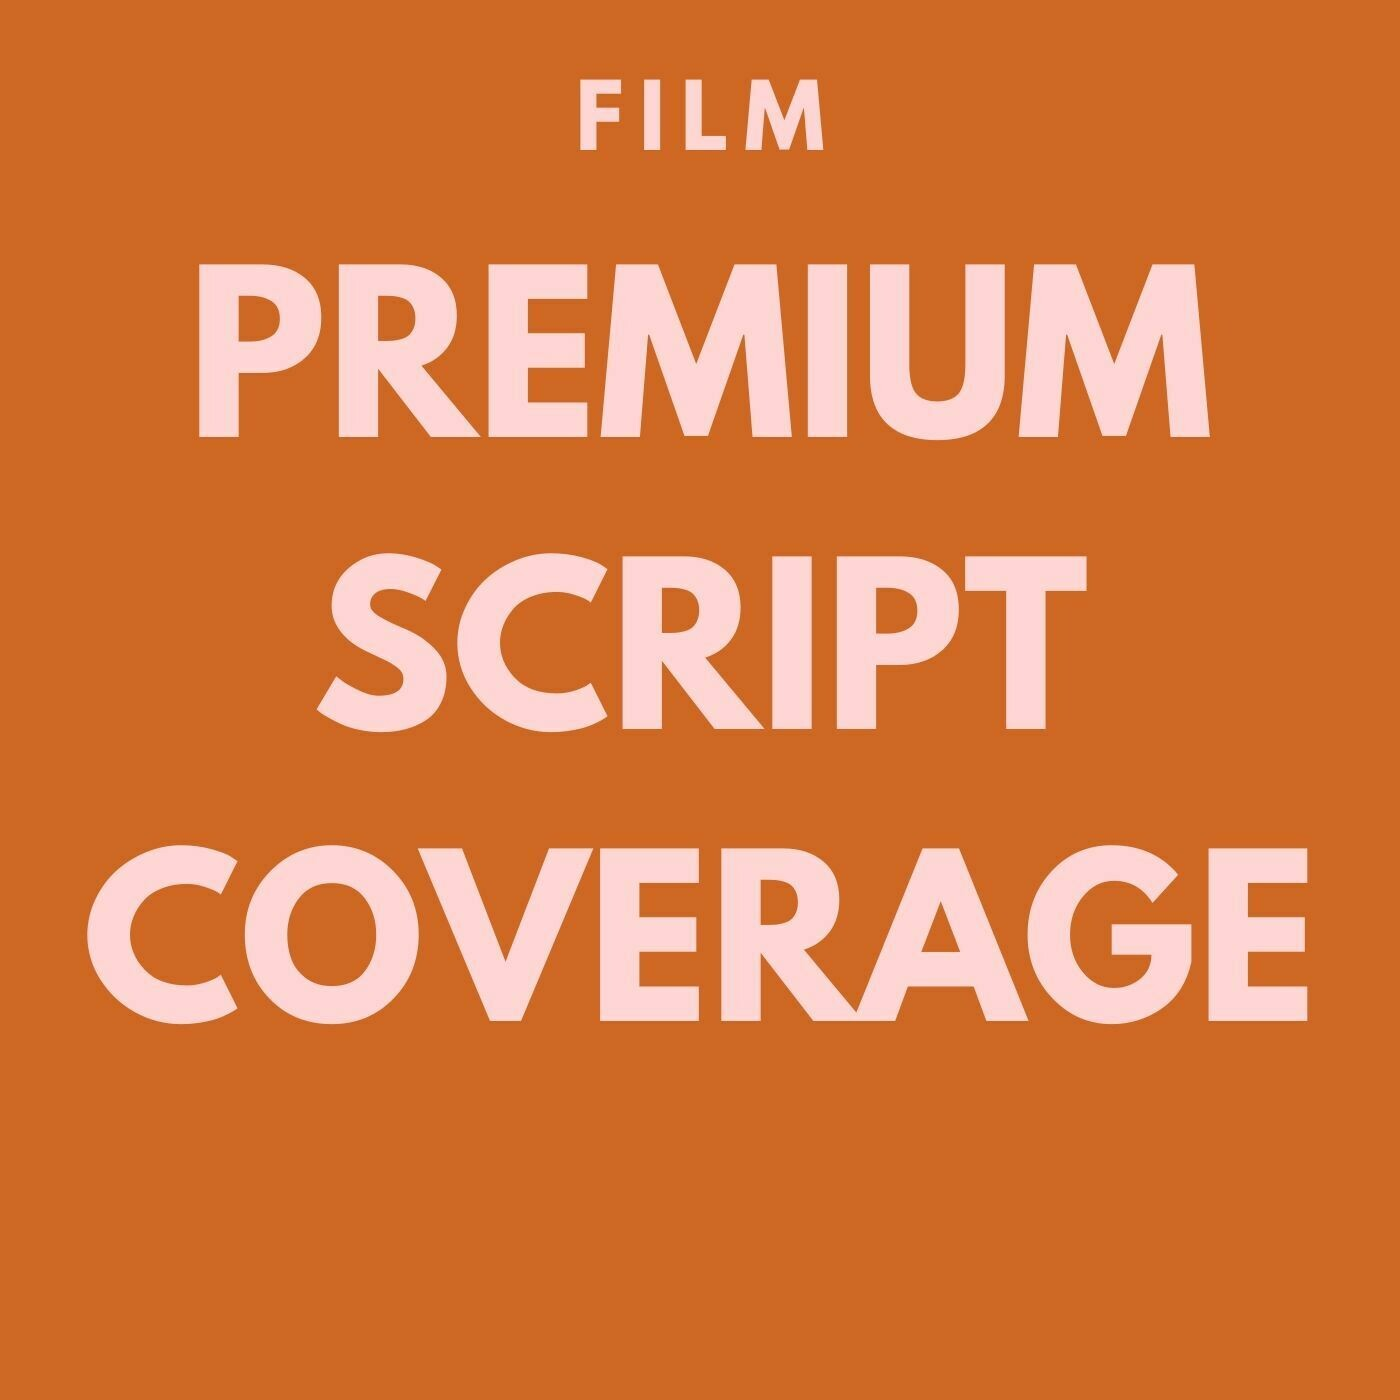 FILM - Premium Script Coverage